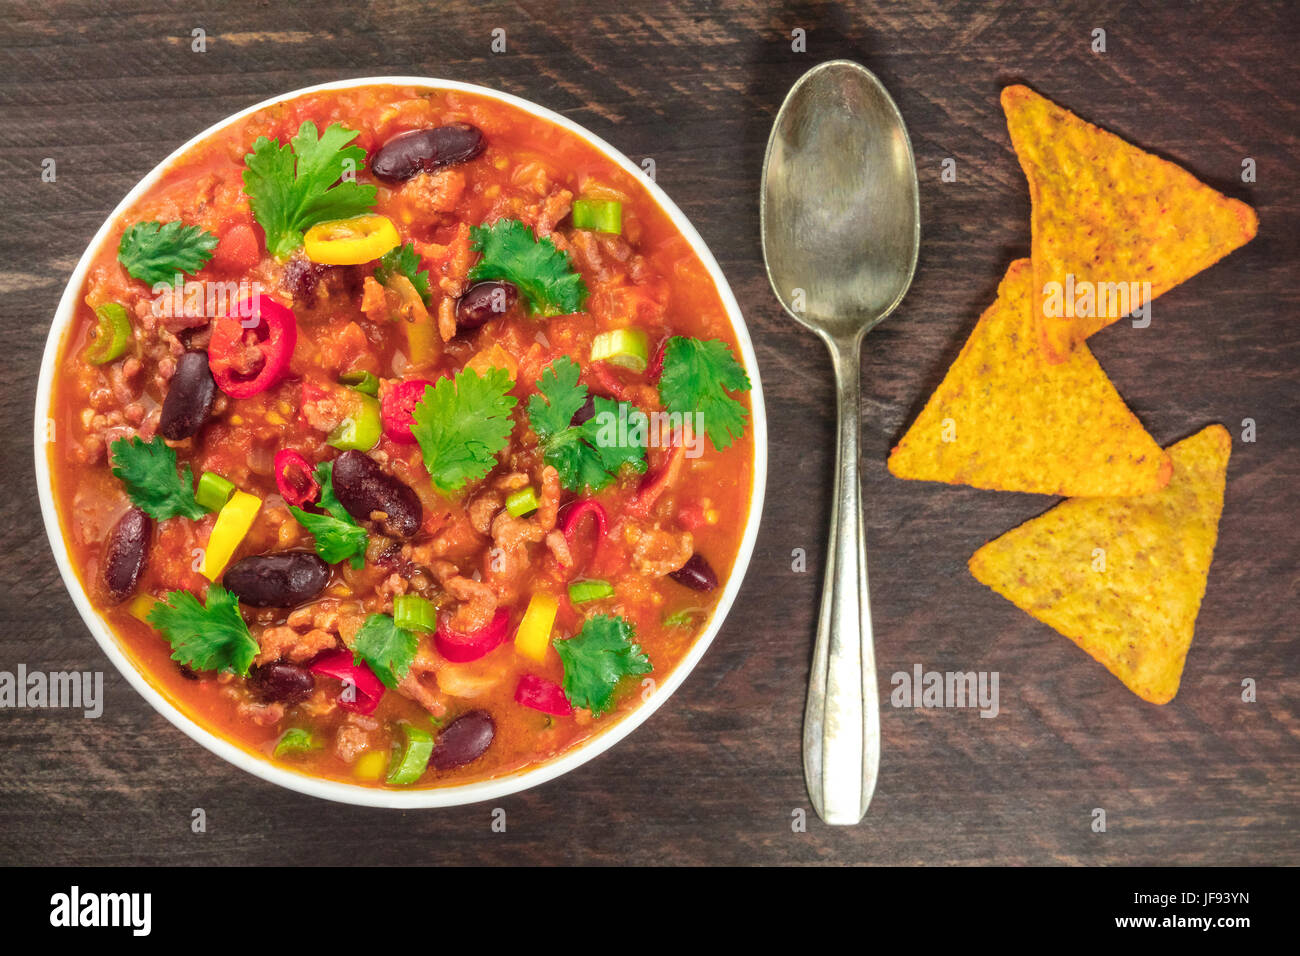 Chili con carne, traditional Mexican dish, with copyspace - Stock Image